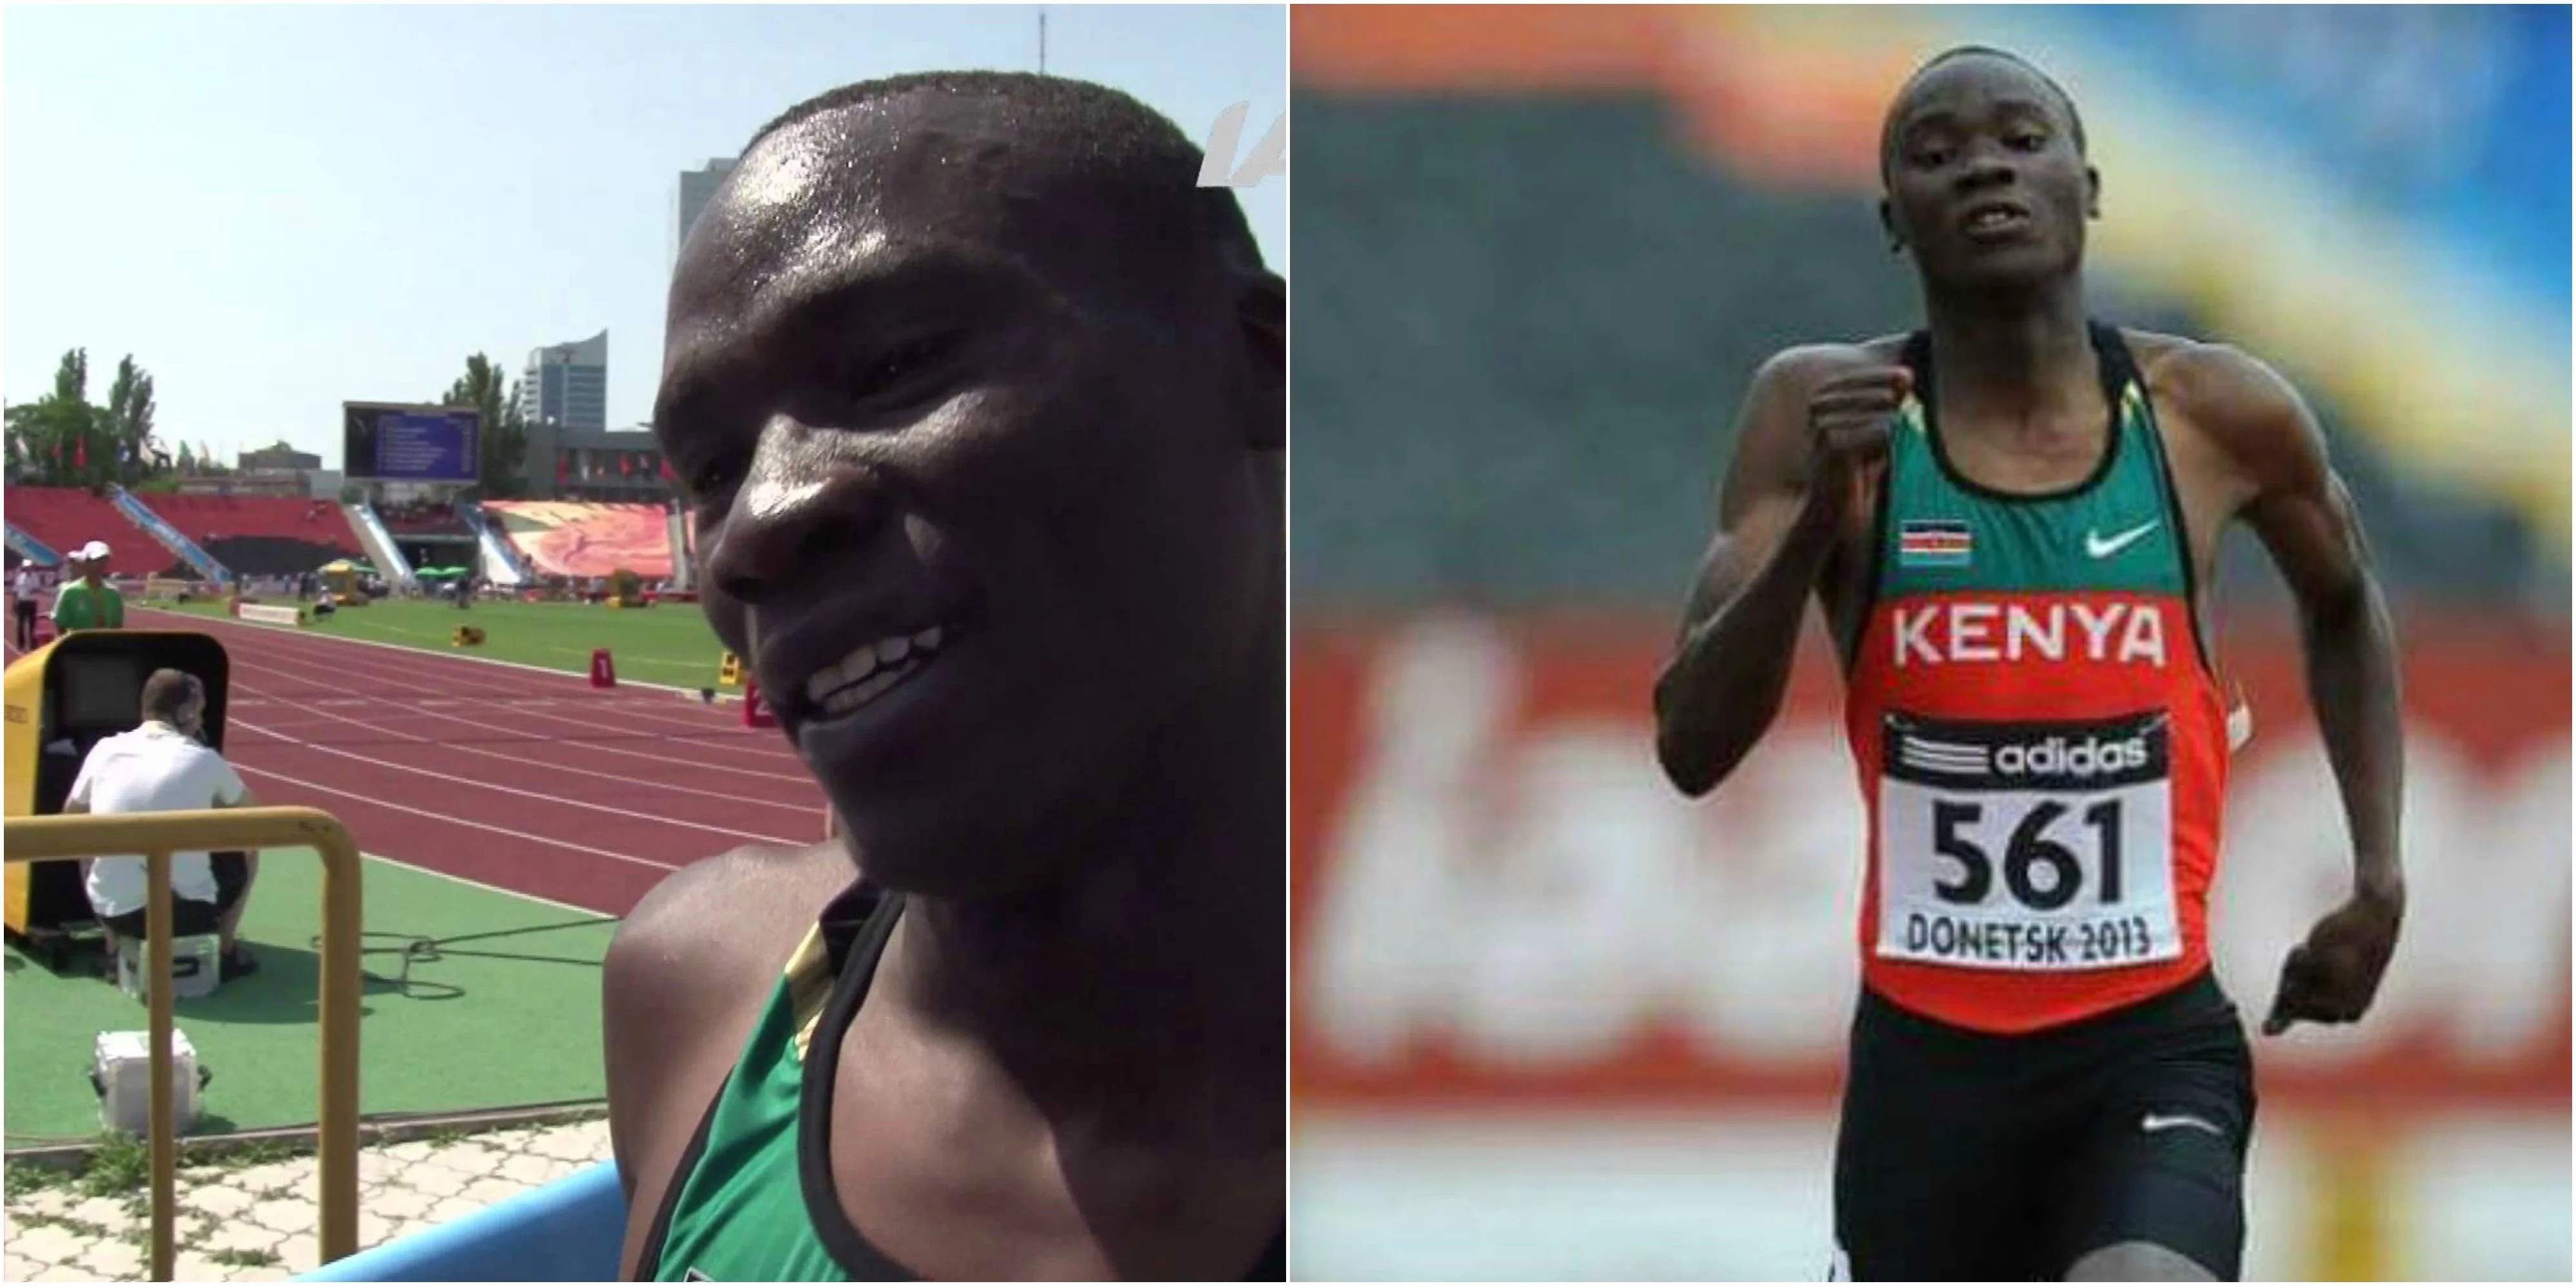 Supplements could have caused death of Ian Mutuku, coach reveals